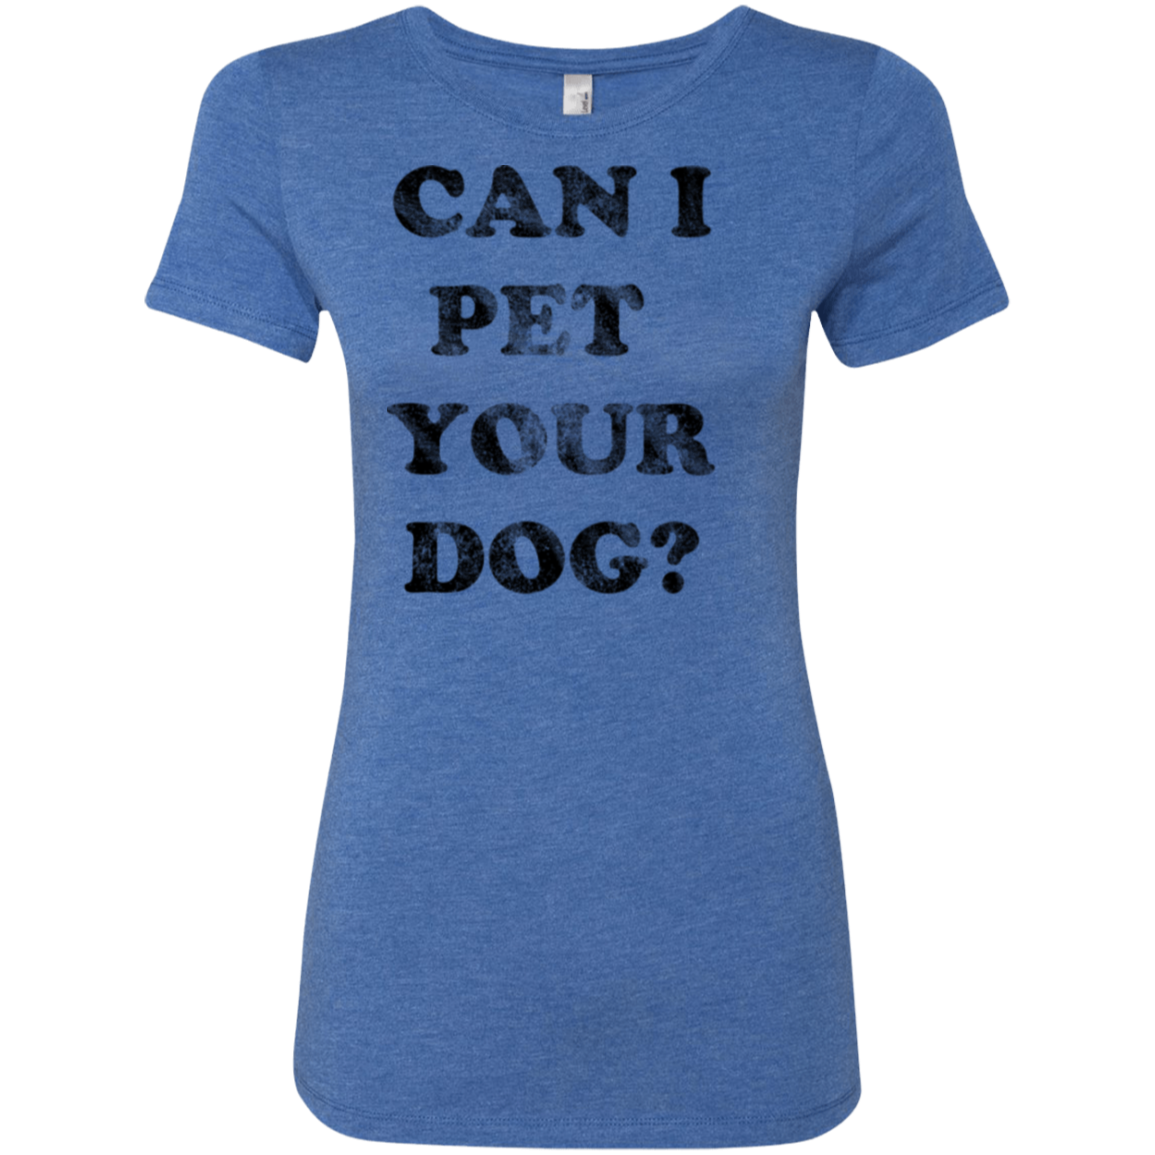 Can I Pet Your Dog Women's Classic Tee - Trendy Tees